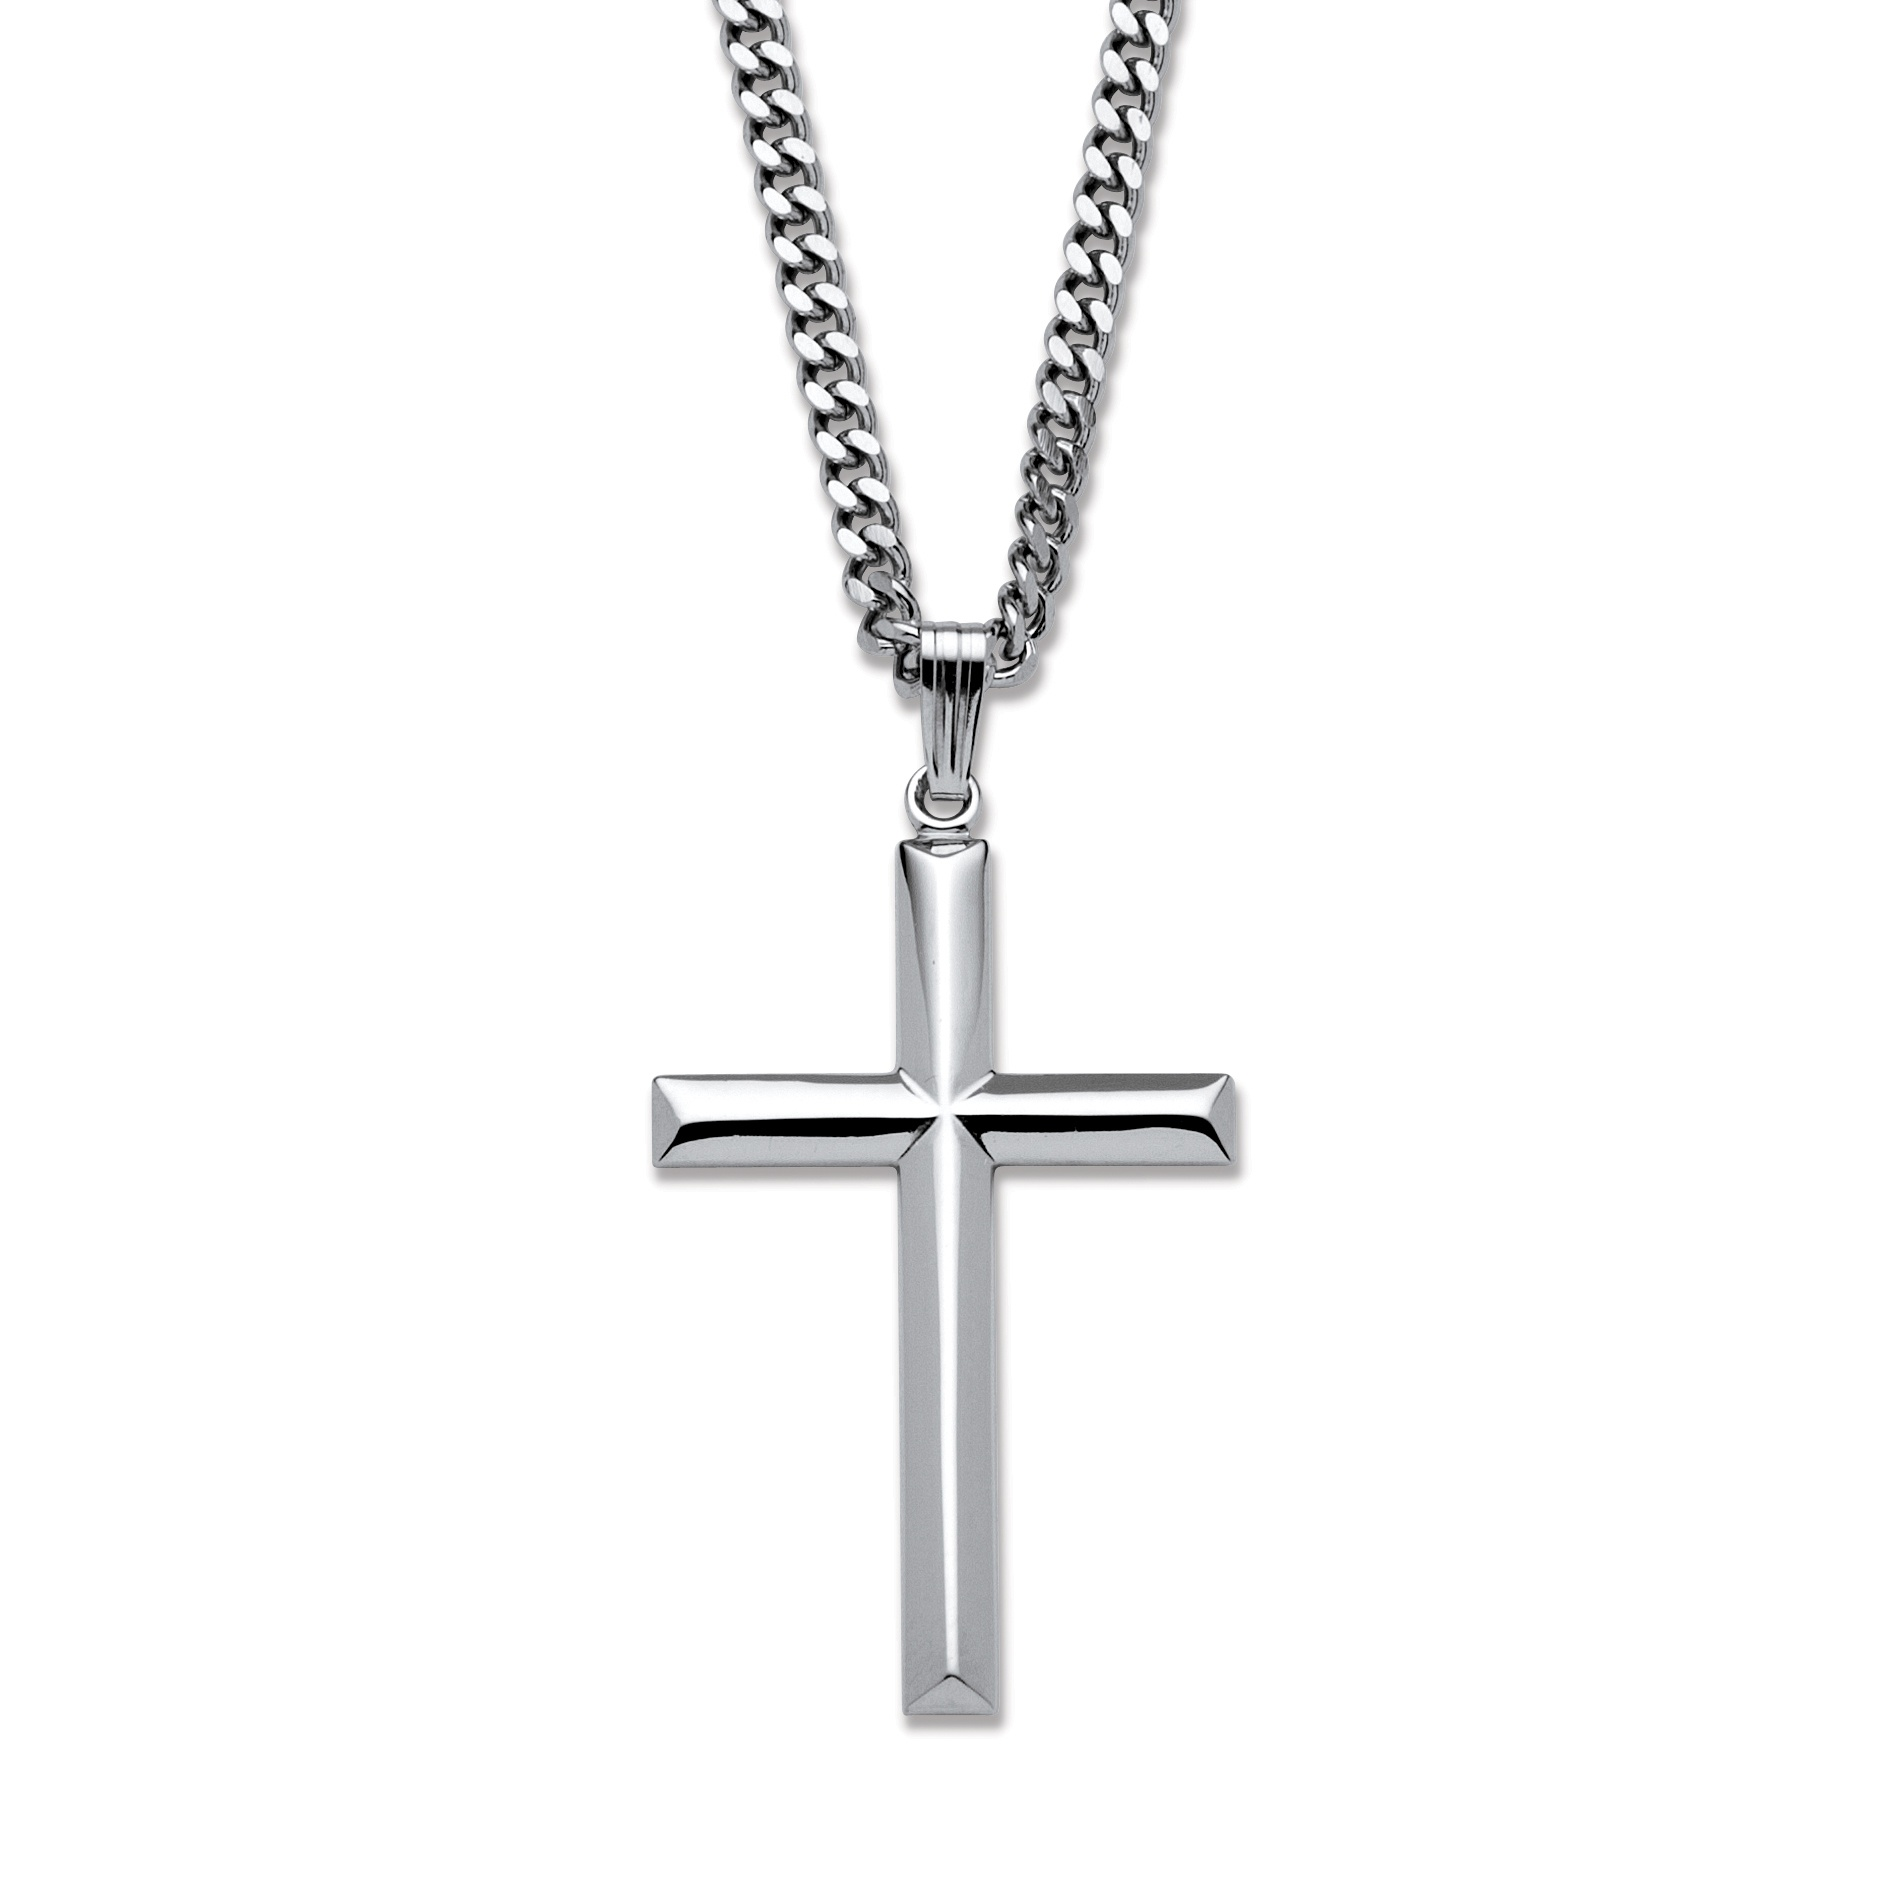 cross men bliss mens free shipping pendant baseball necklace for silver